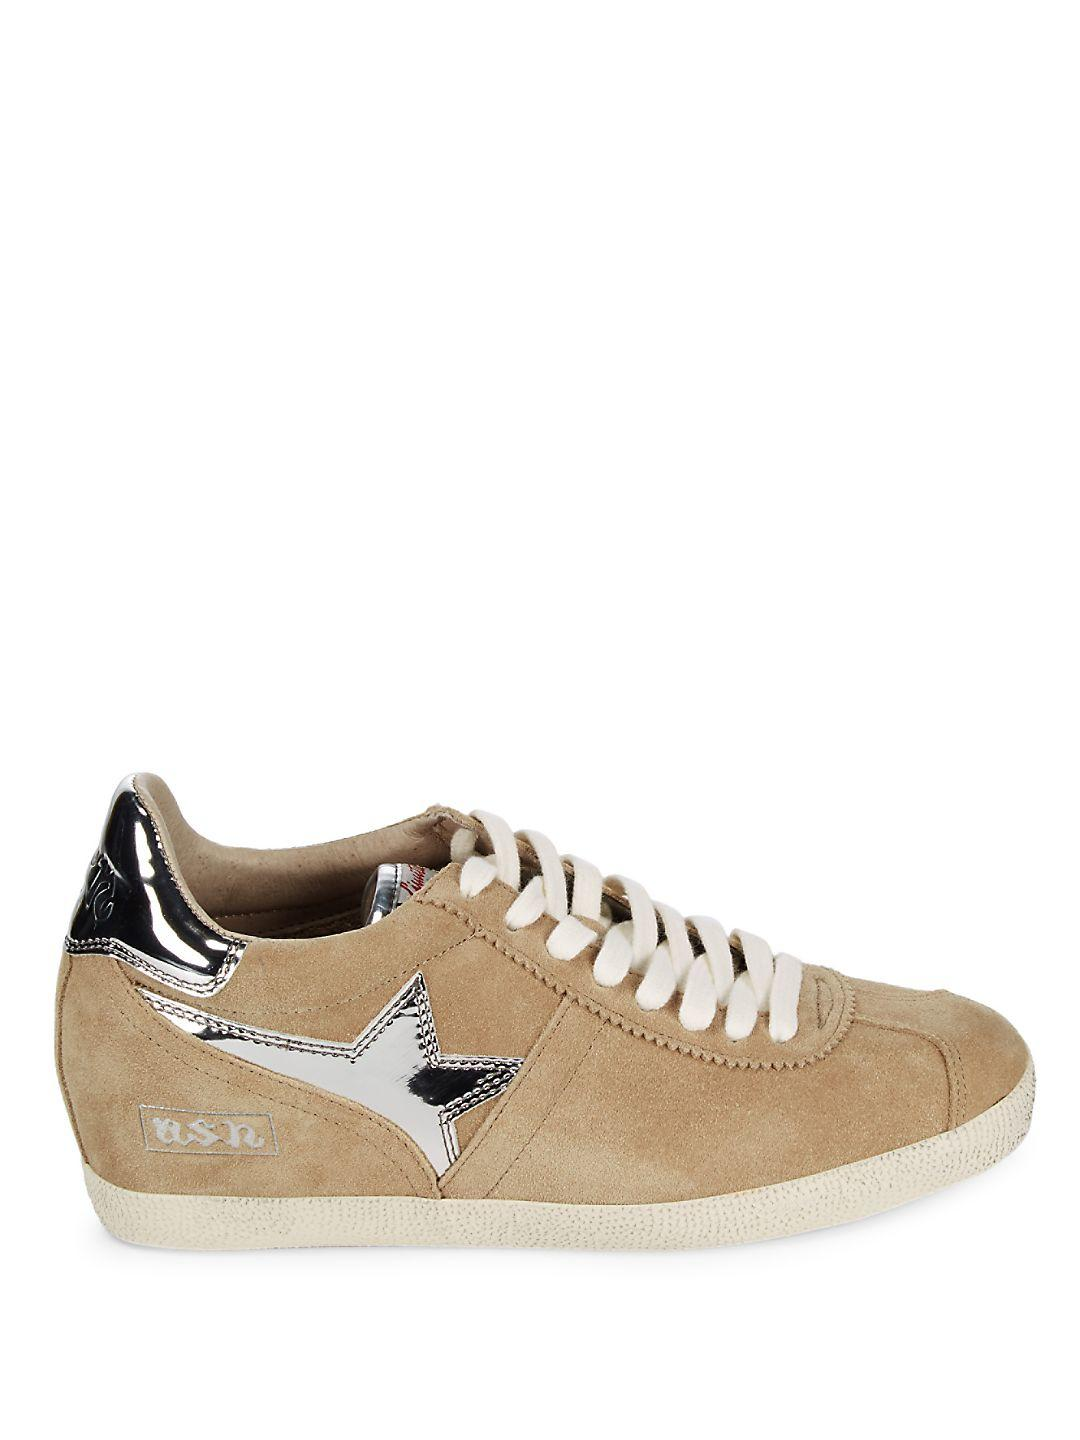 Ash Guepard Leather Sneakers in Brown